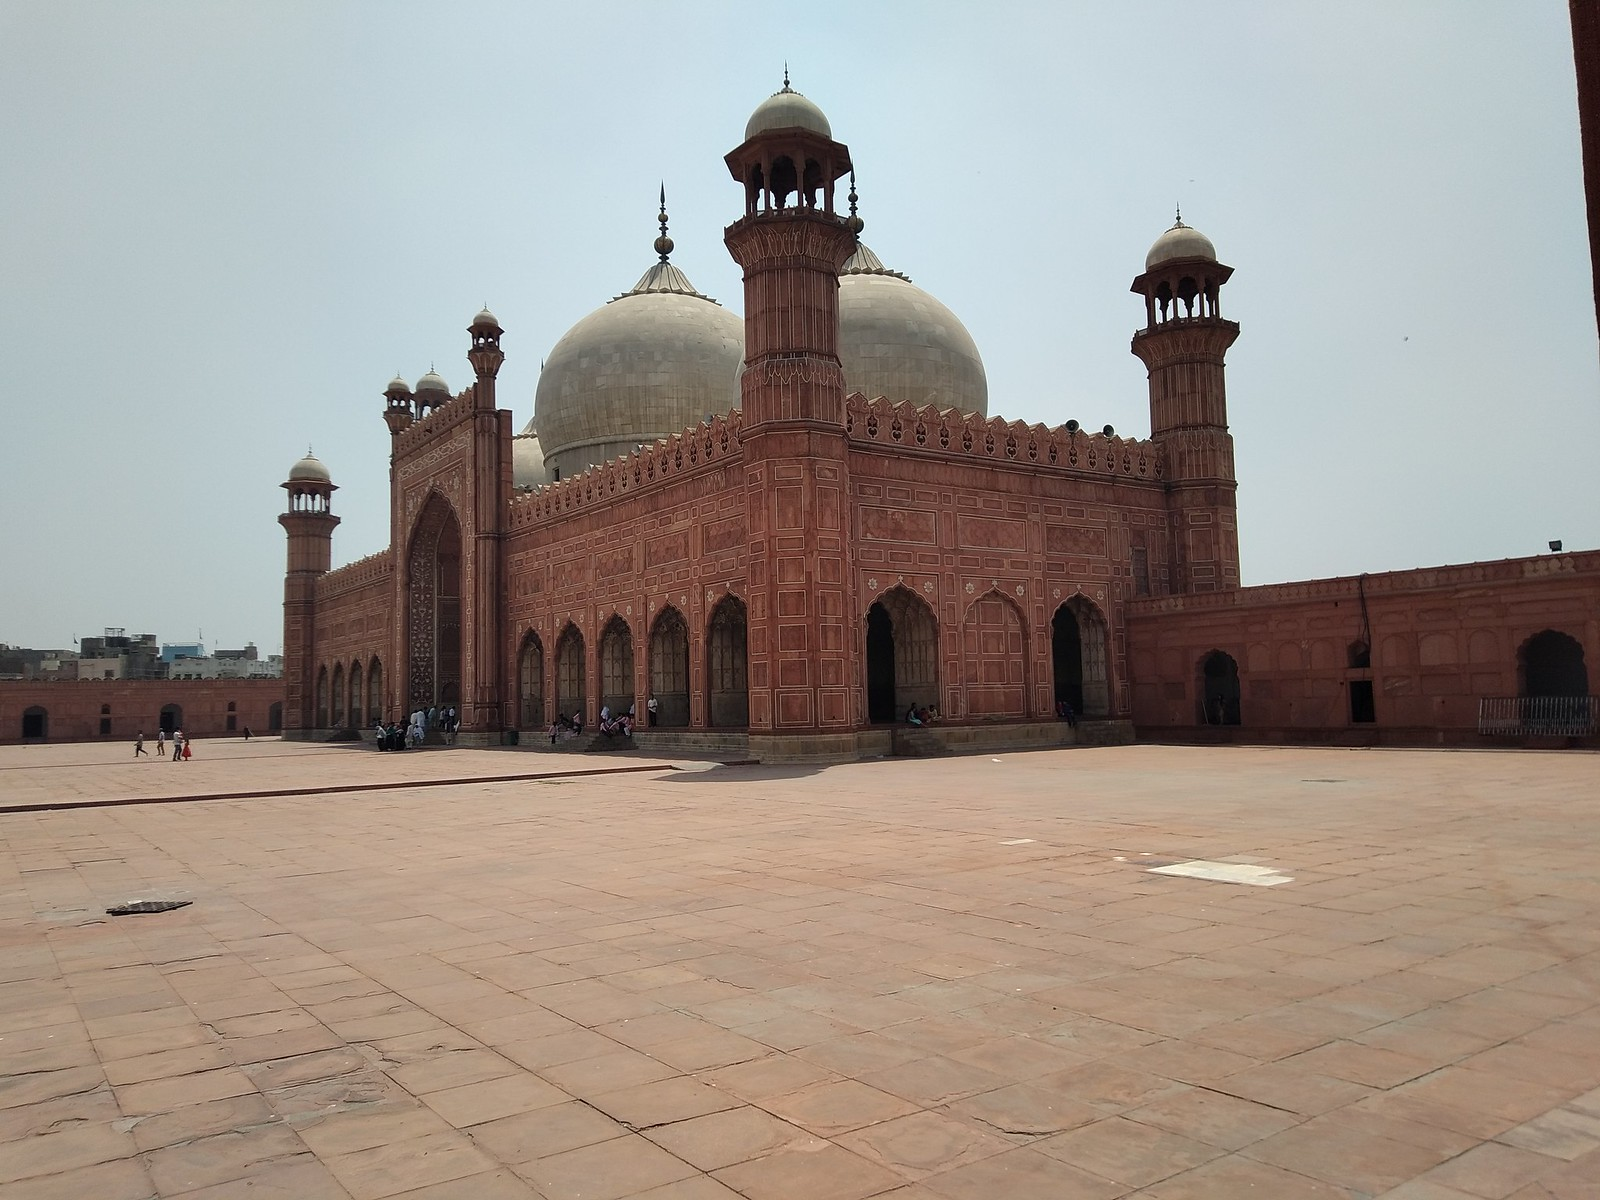 Badshahi Mosque Picture with HDR mode on oppo A3s